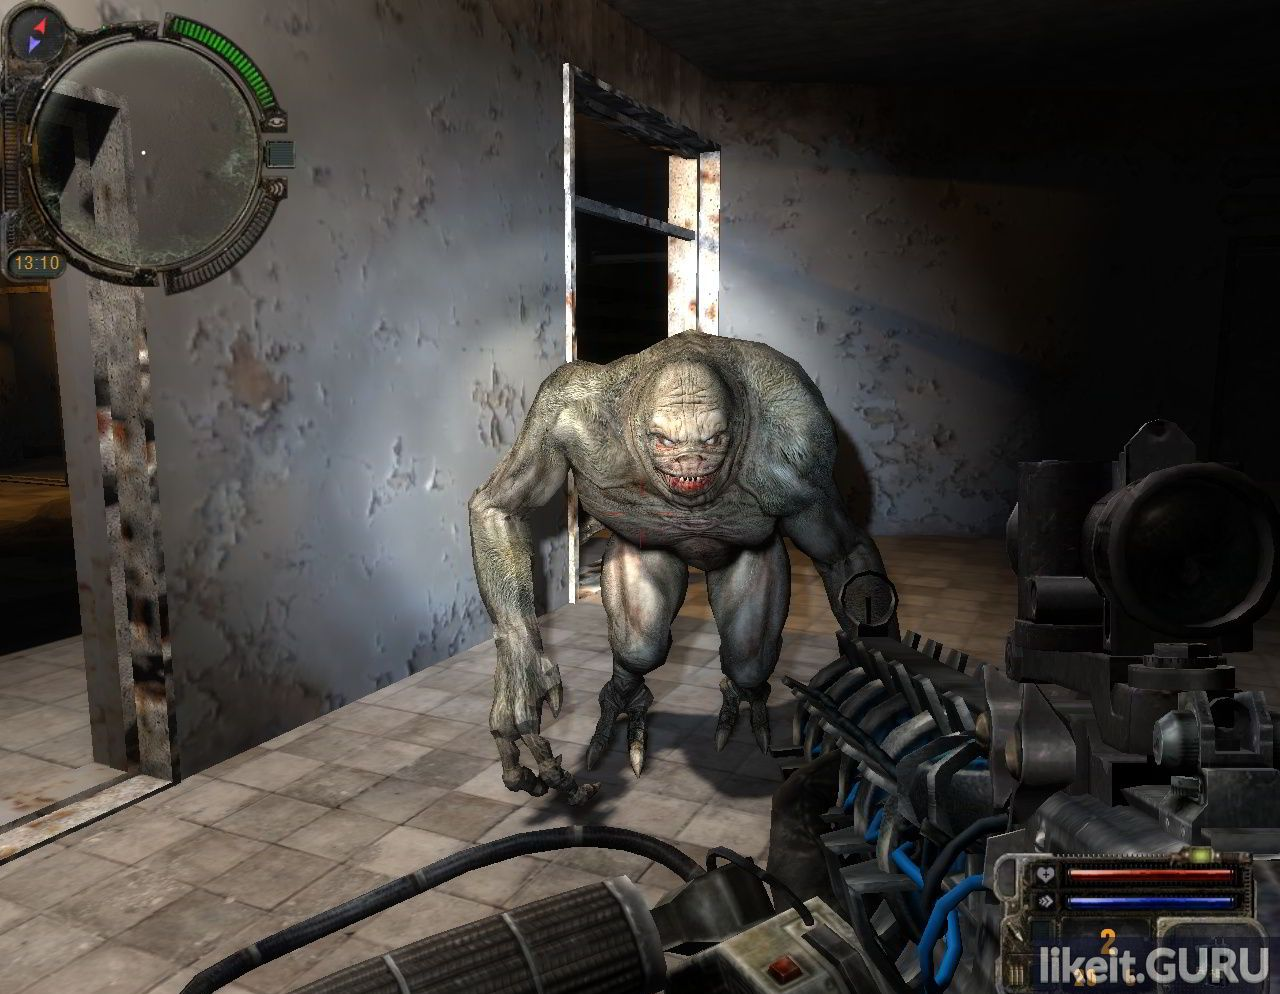 S.T.A.L.K.E.R .: Call of Pripyat download torrent